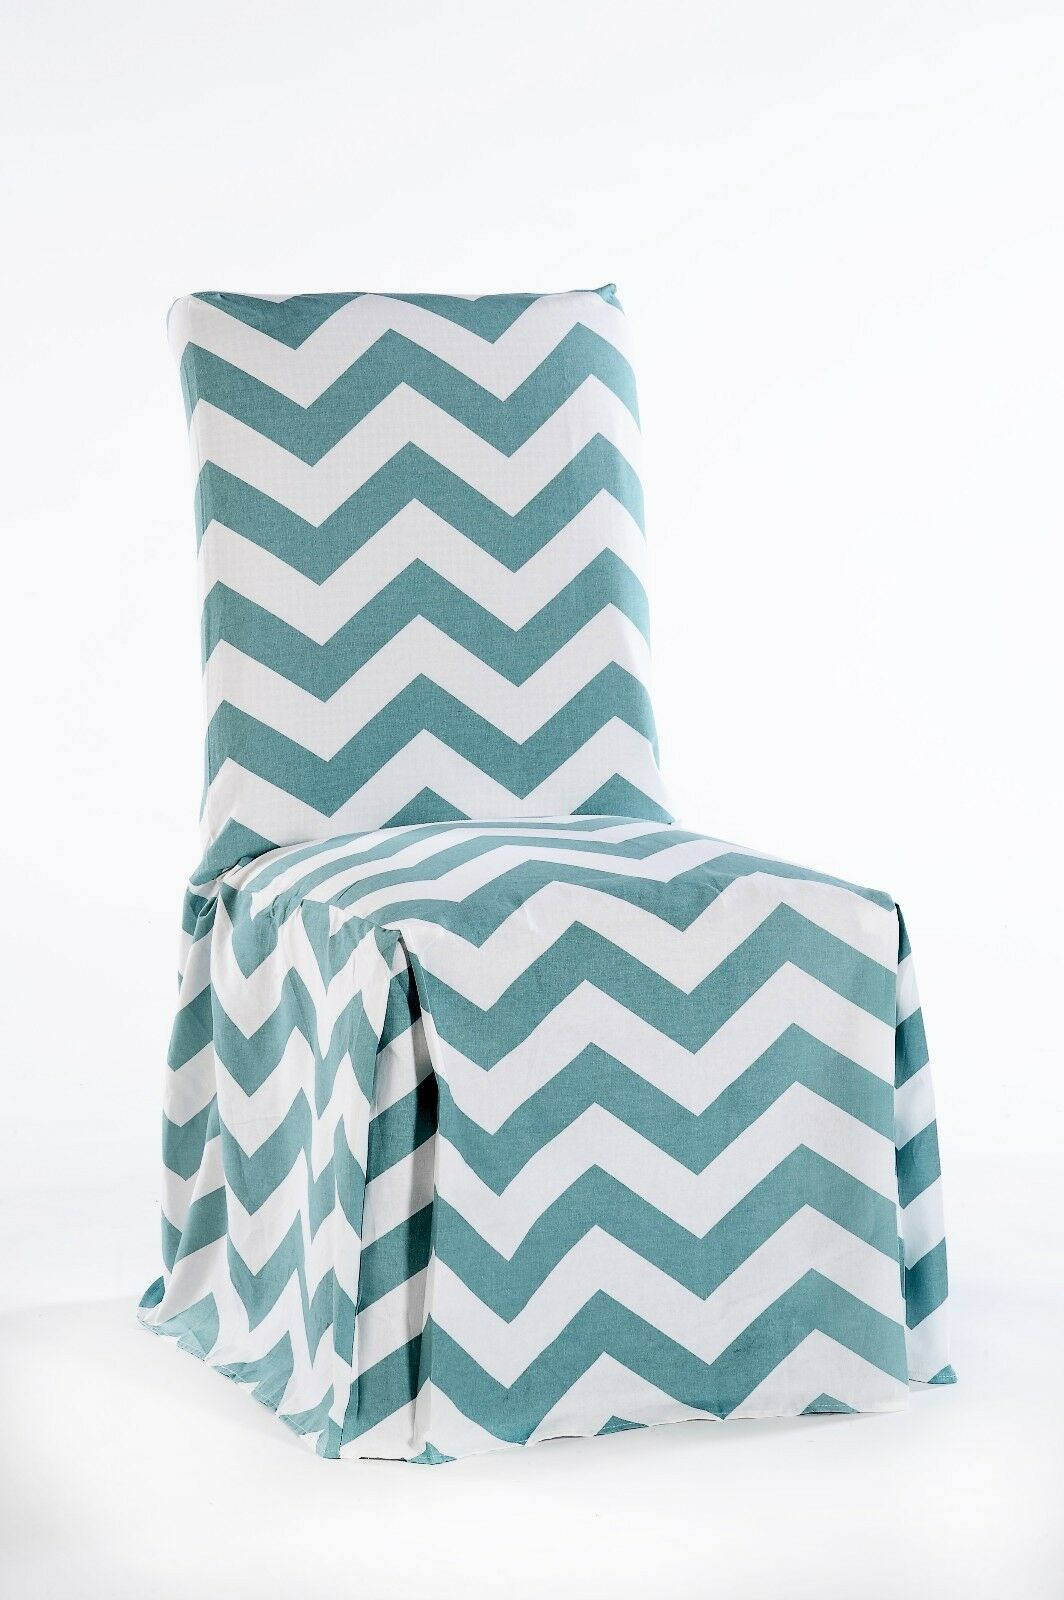 Picture 3 of 3 & Twill Cotton Chevron Pattern Full Dining Chair Slipcover Cover Tie ...